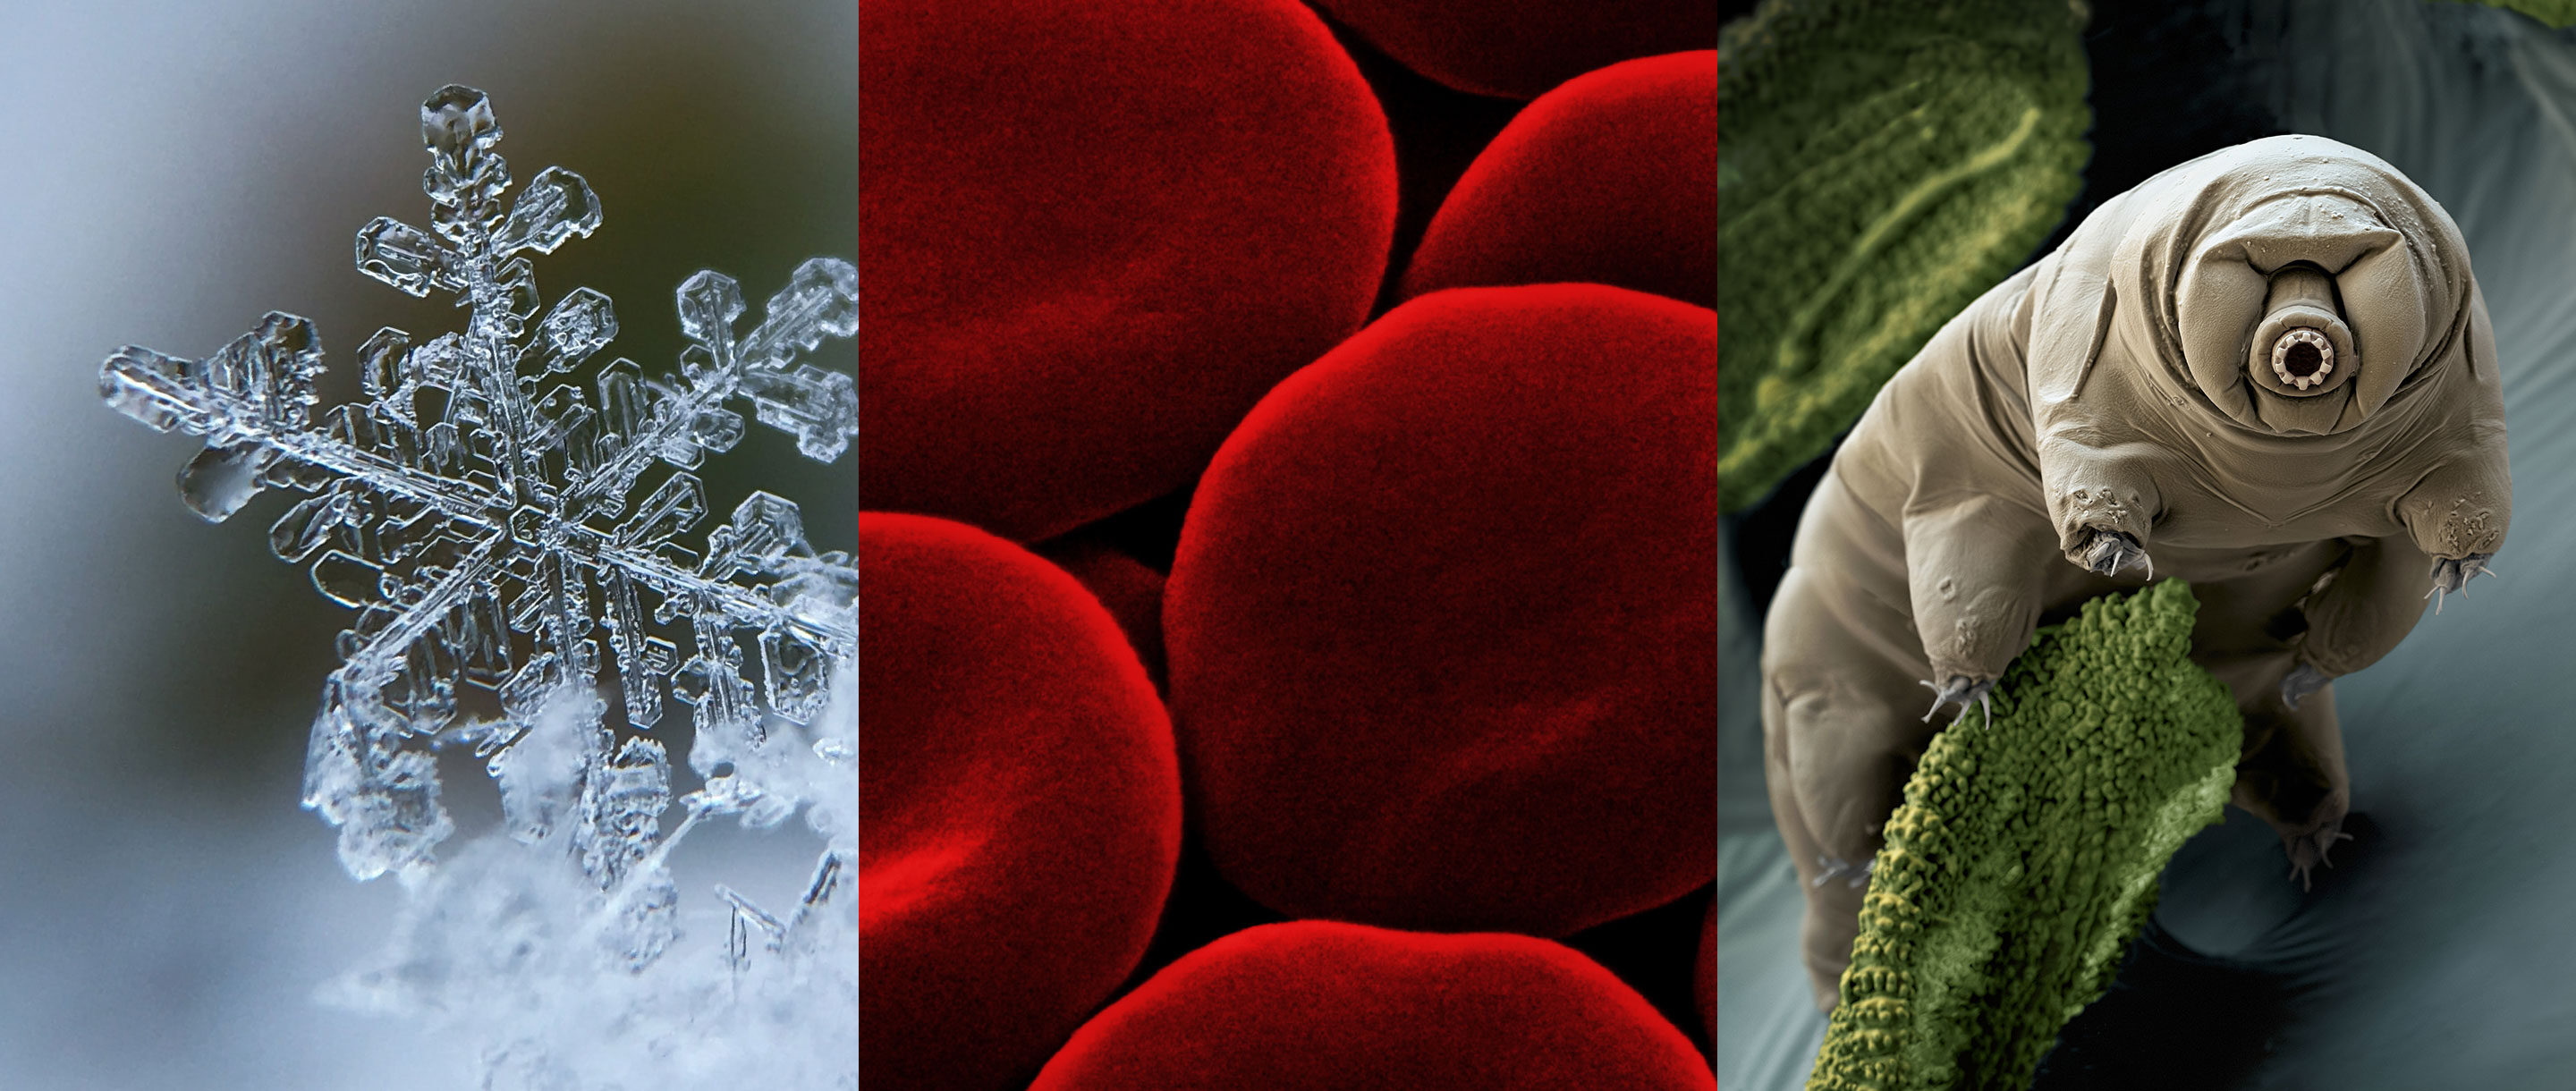 Three images showing highly magnified images of a snowflake, red blood cells and a tardigrade.